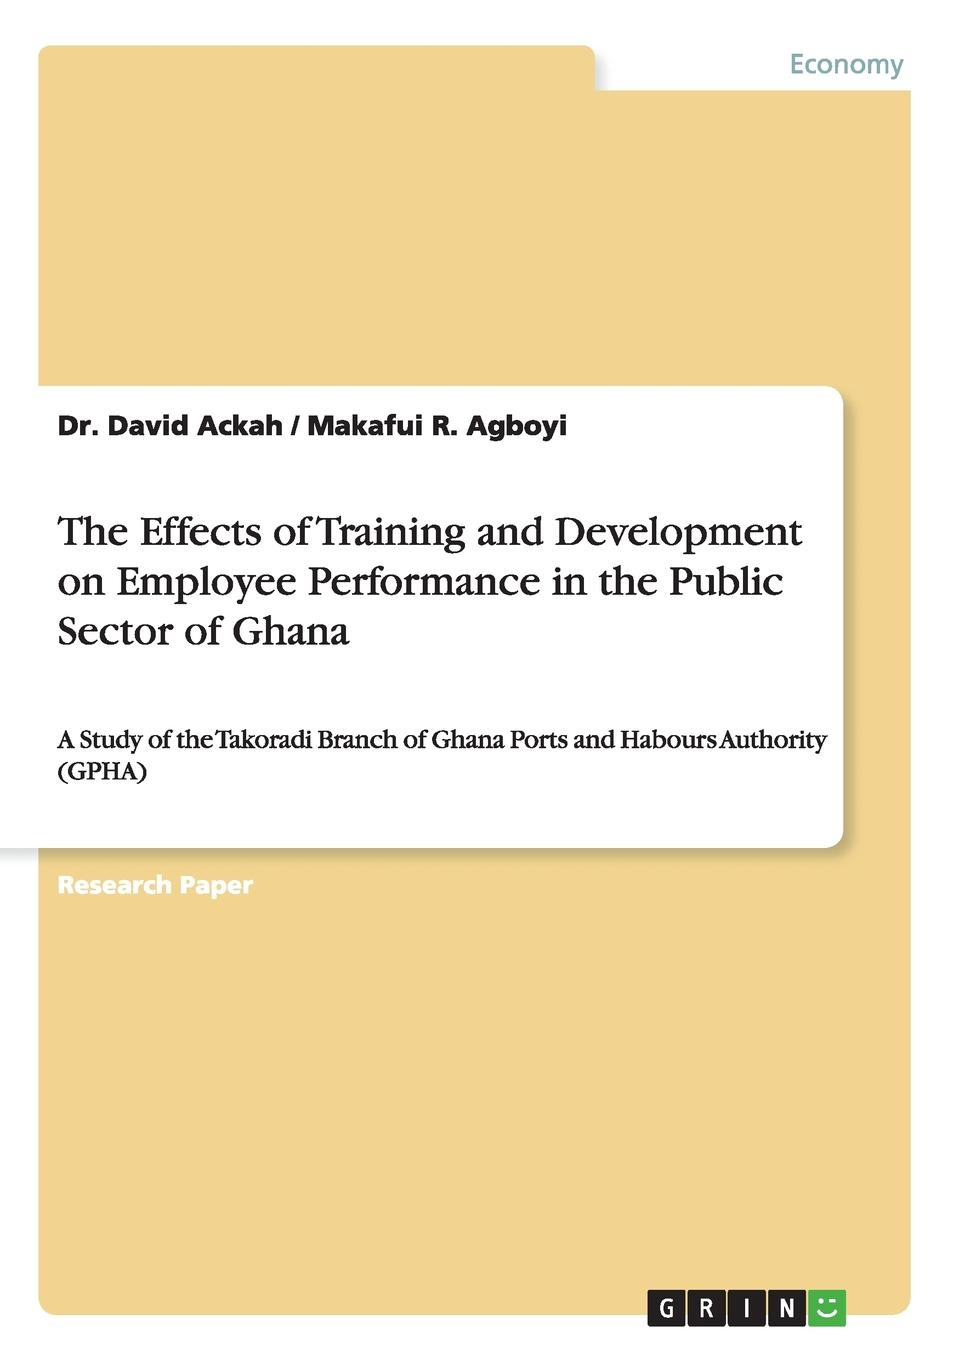 Dr. David Ackah, Makafui R. Agboyi The Effects of Training and Development on Employee Performance in the Public Sector of Ghana alemayehu belayneh the impact of refreshment training for school improvement